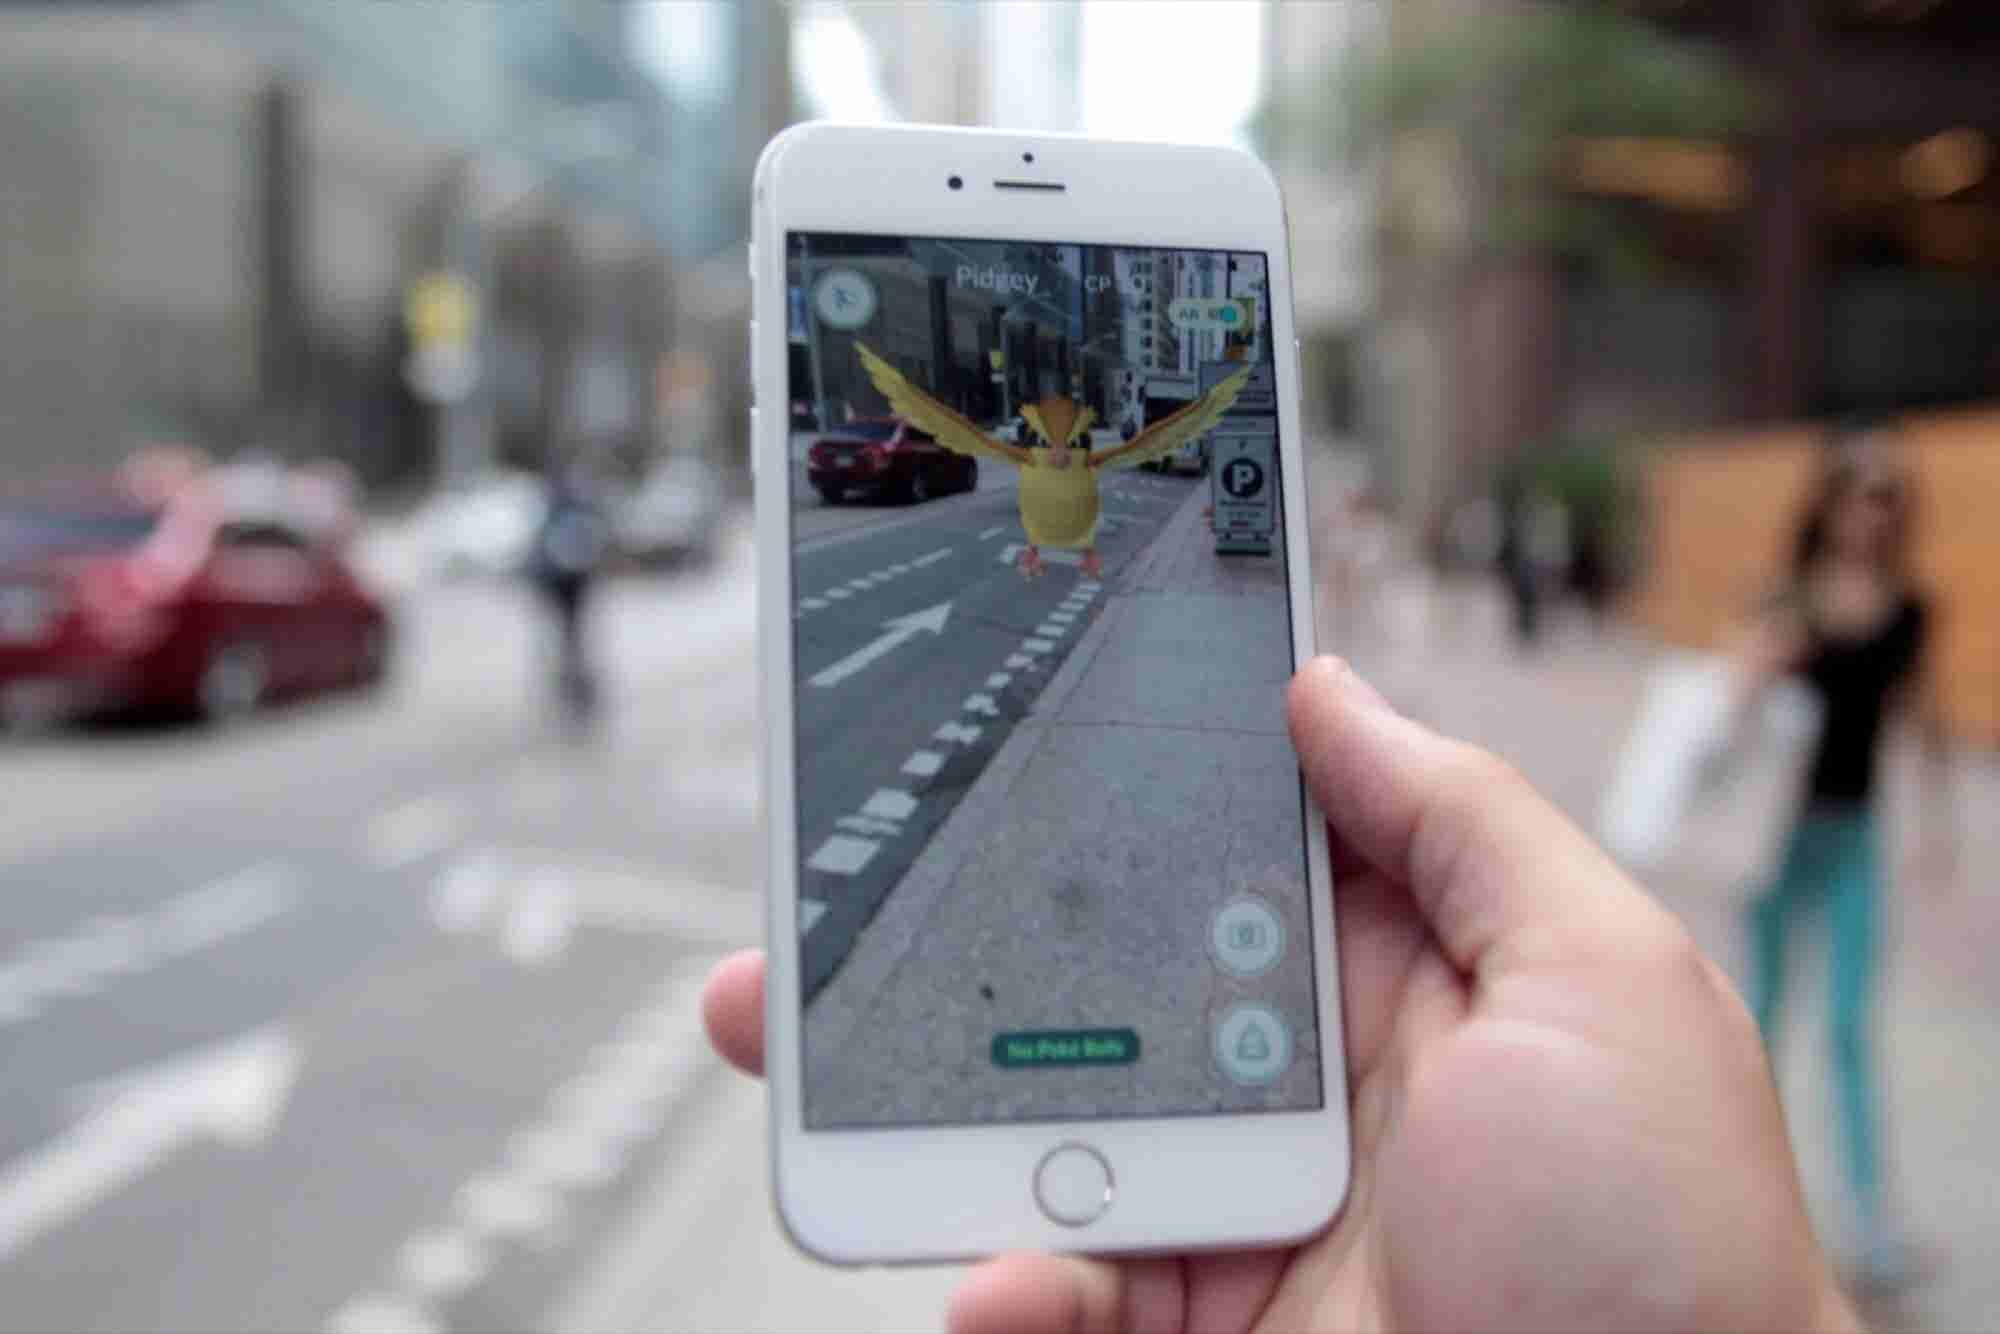 New Test for Nintendo? North Korea an Obstacle for South Korean Pokemon Hunters